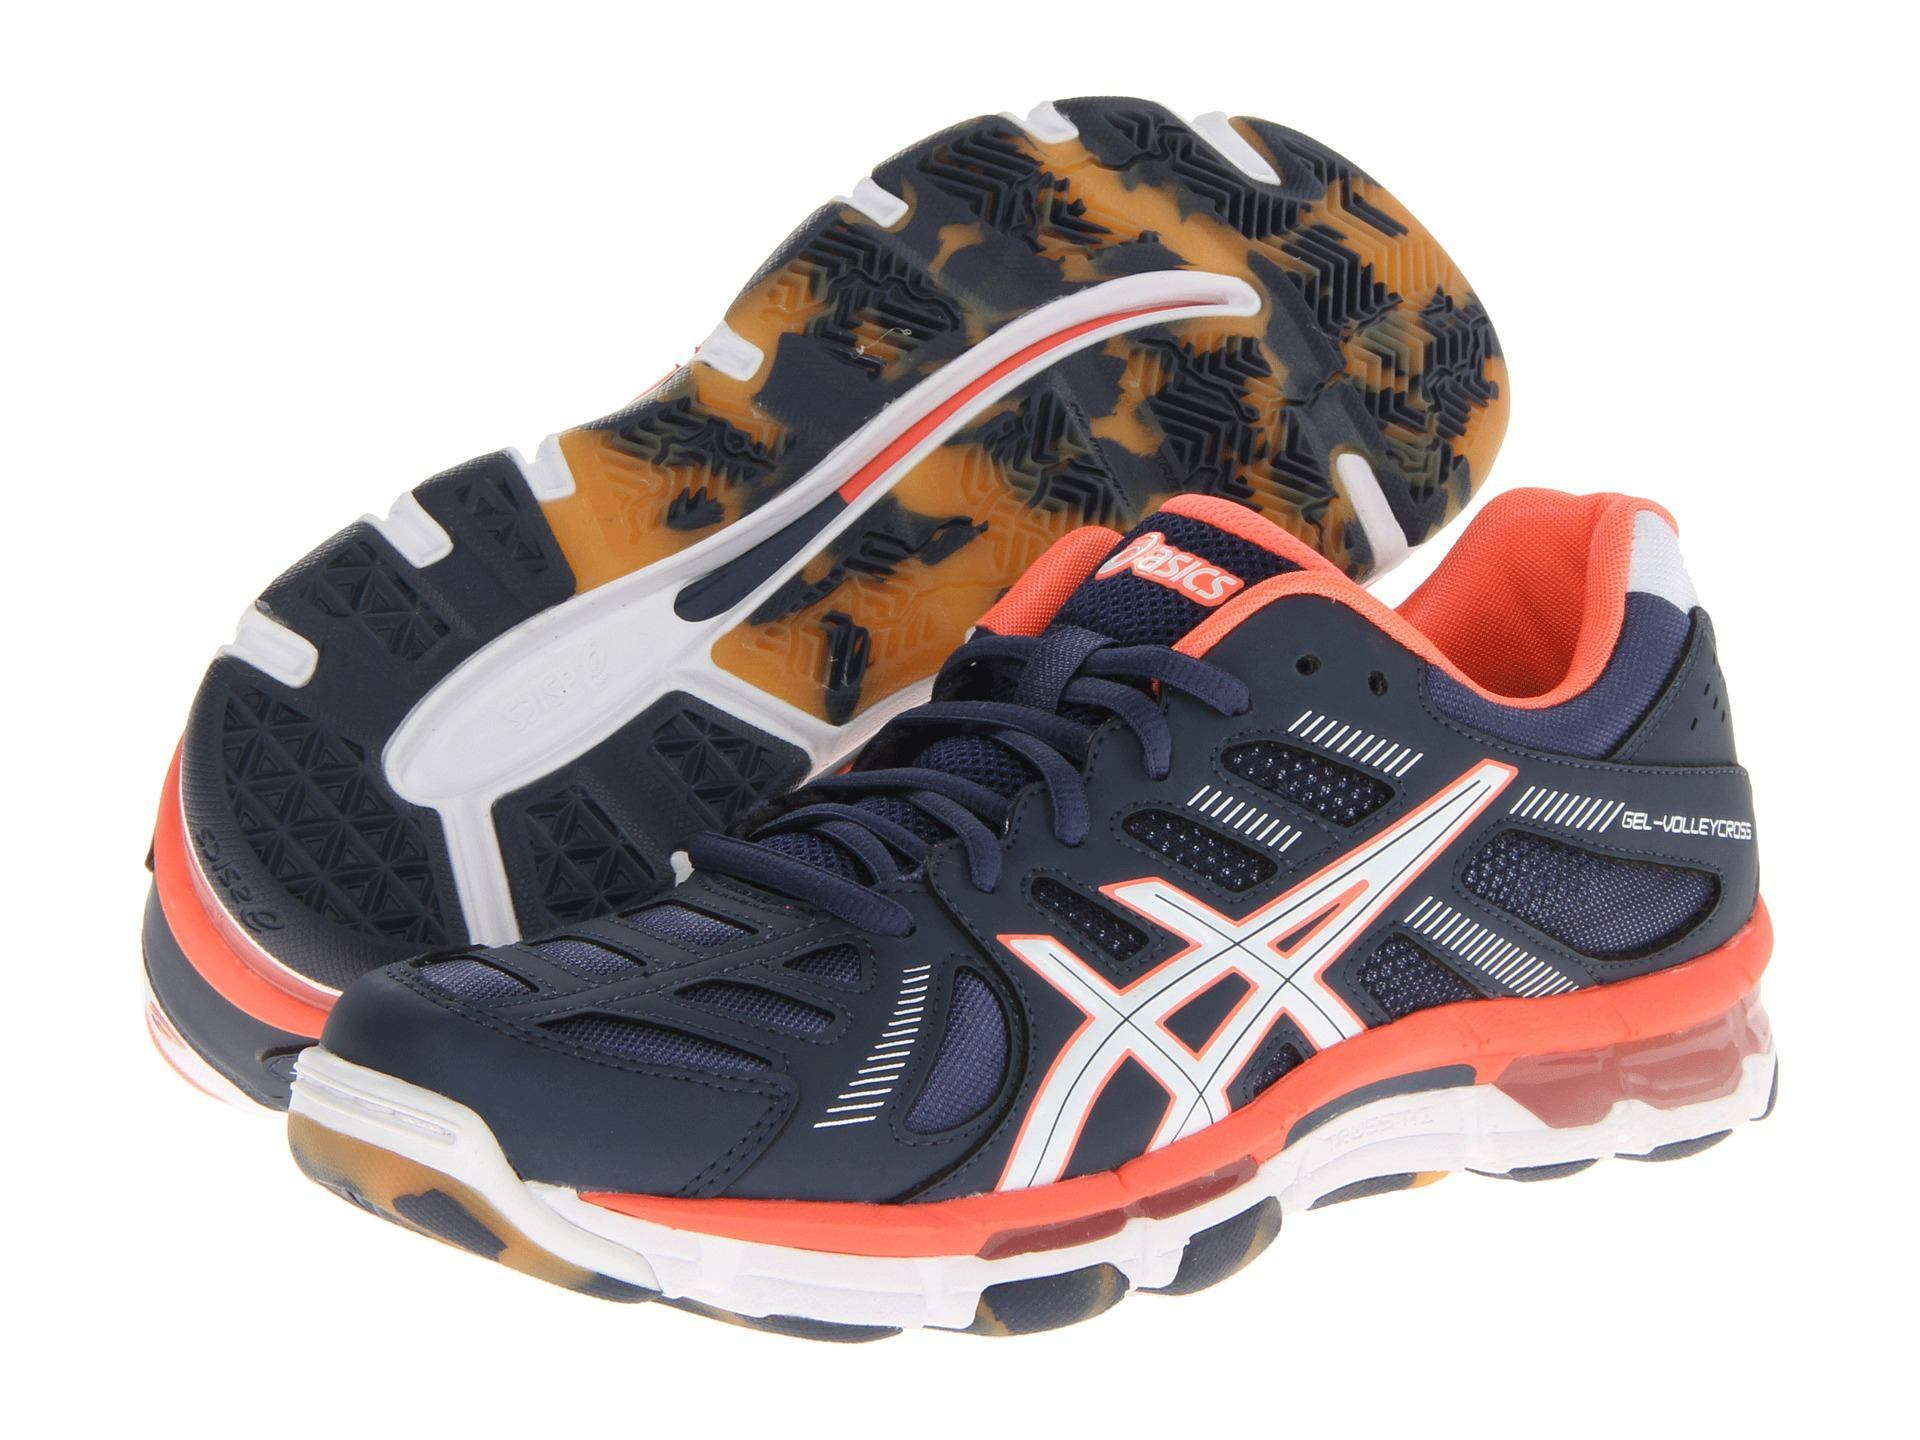 Asics Gel Volleycross Revolution MT Women